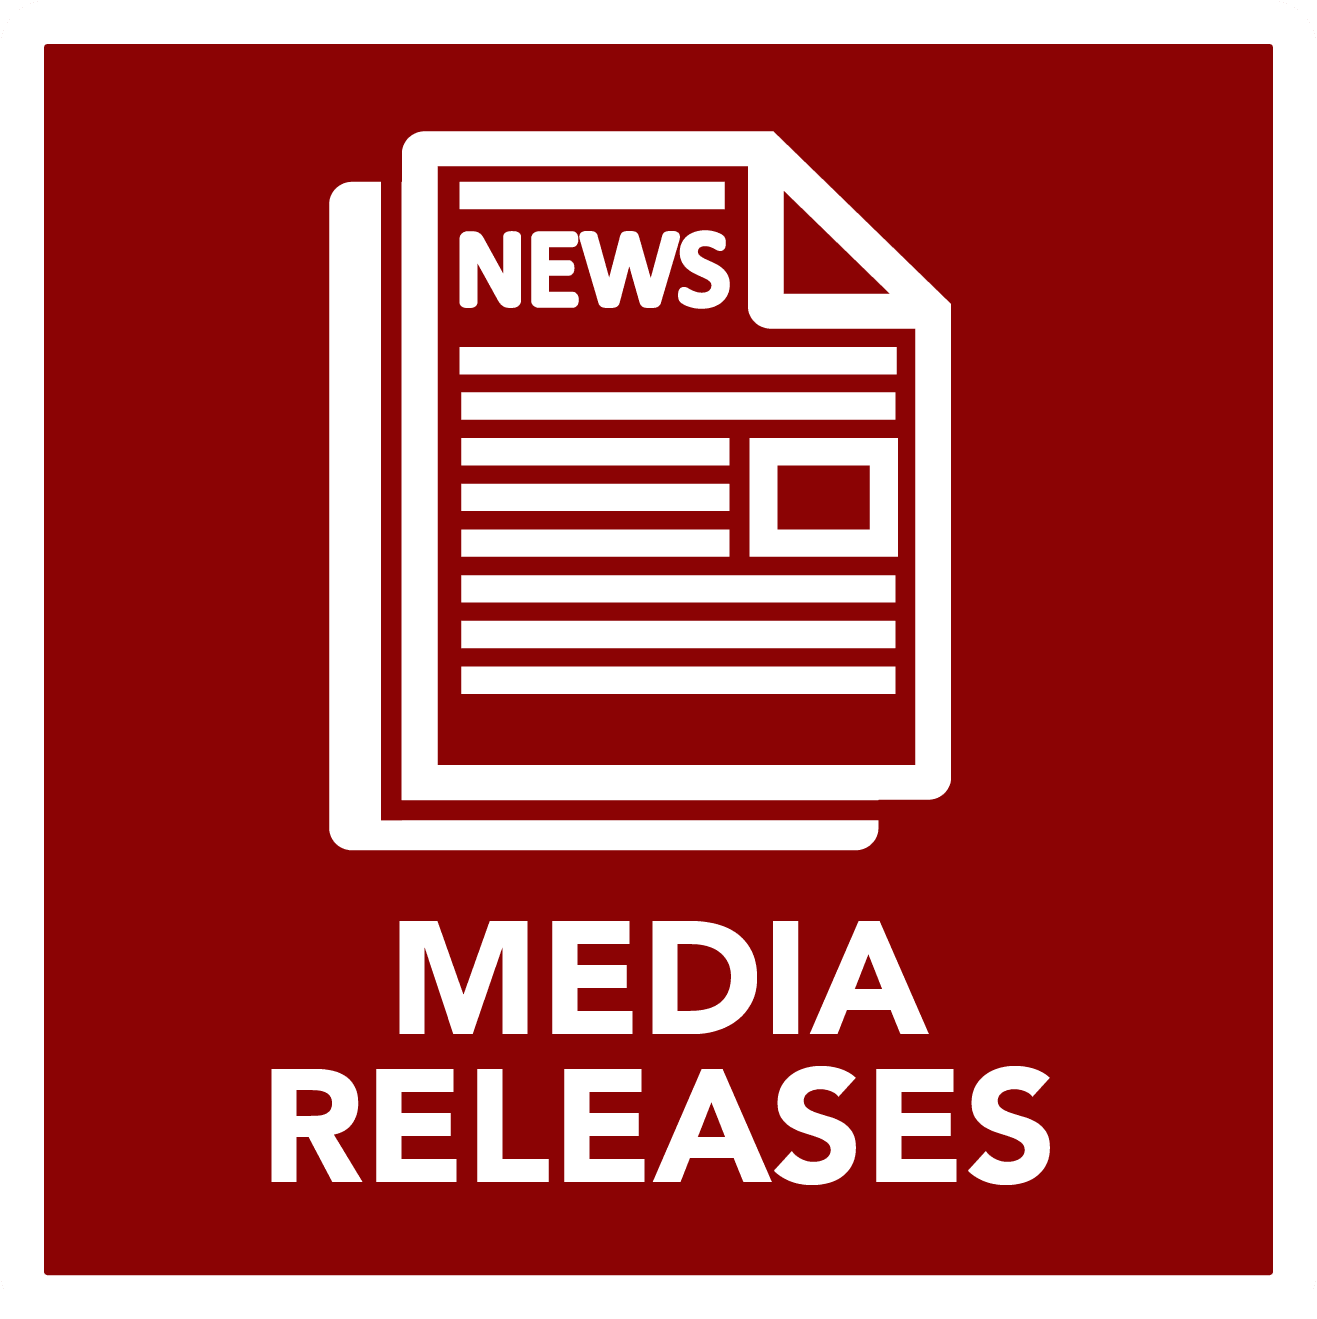 Media Releases  - button